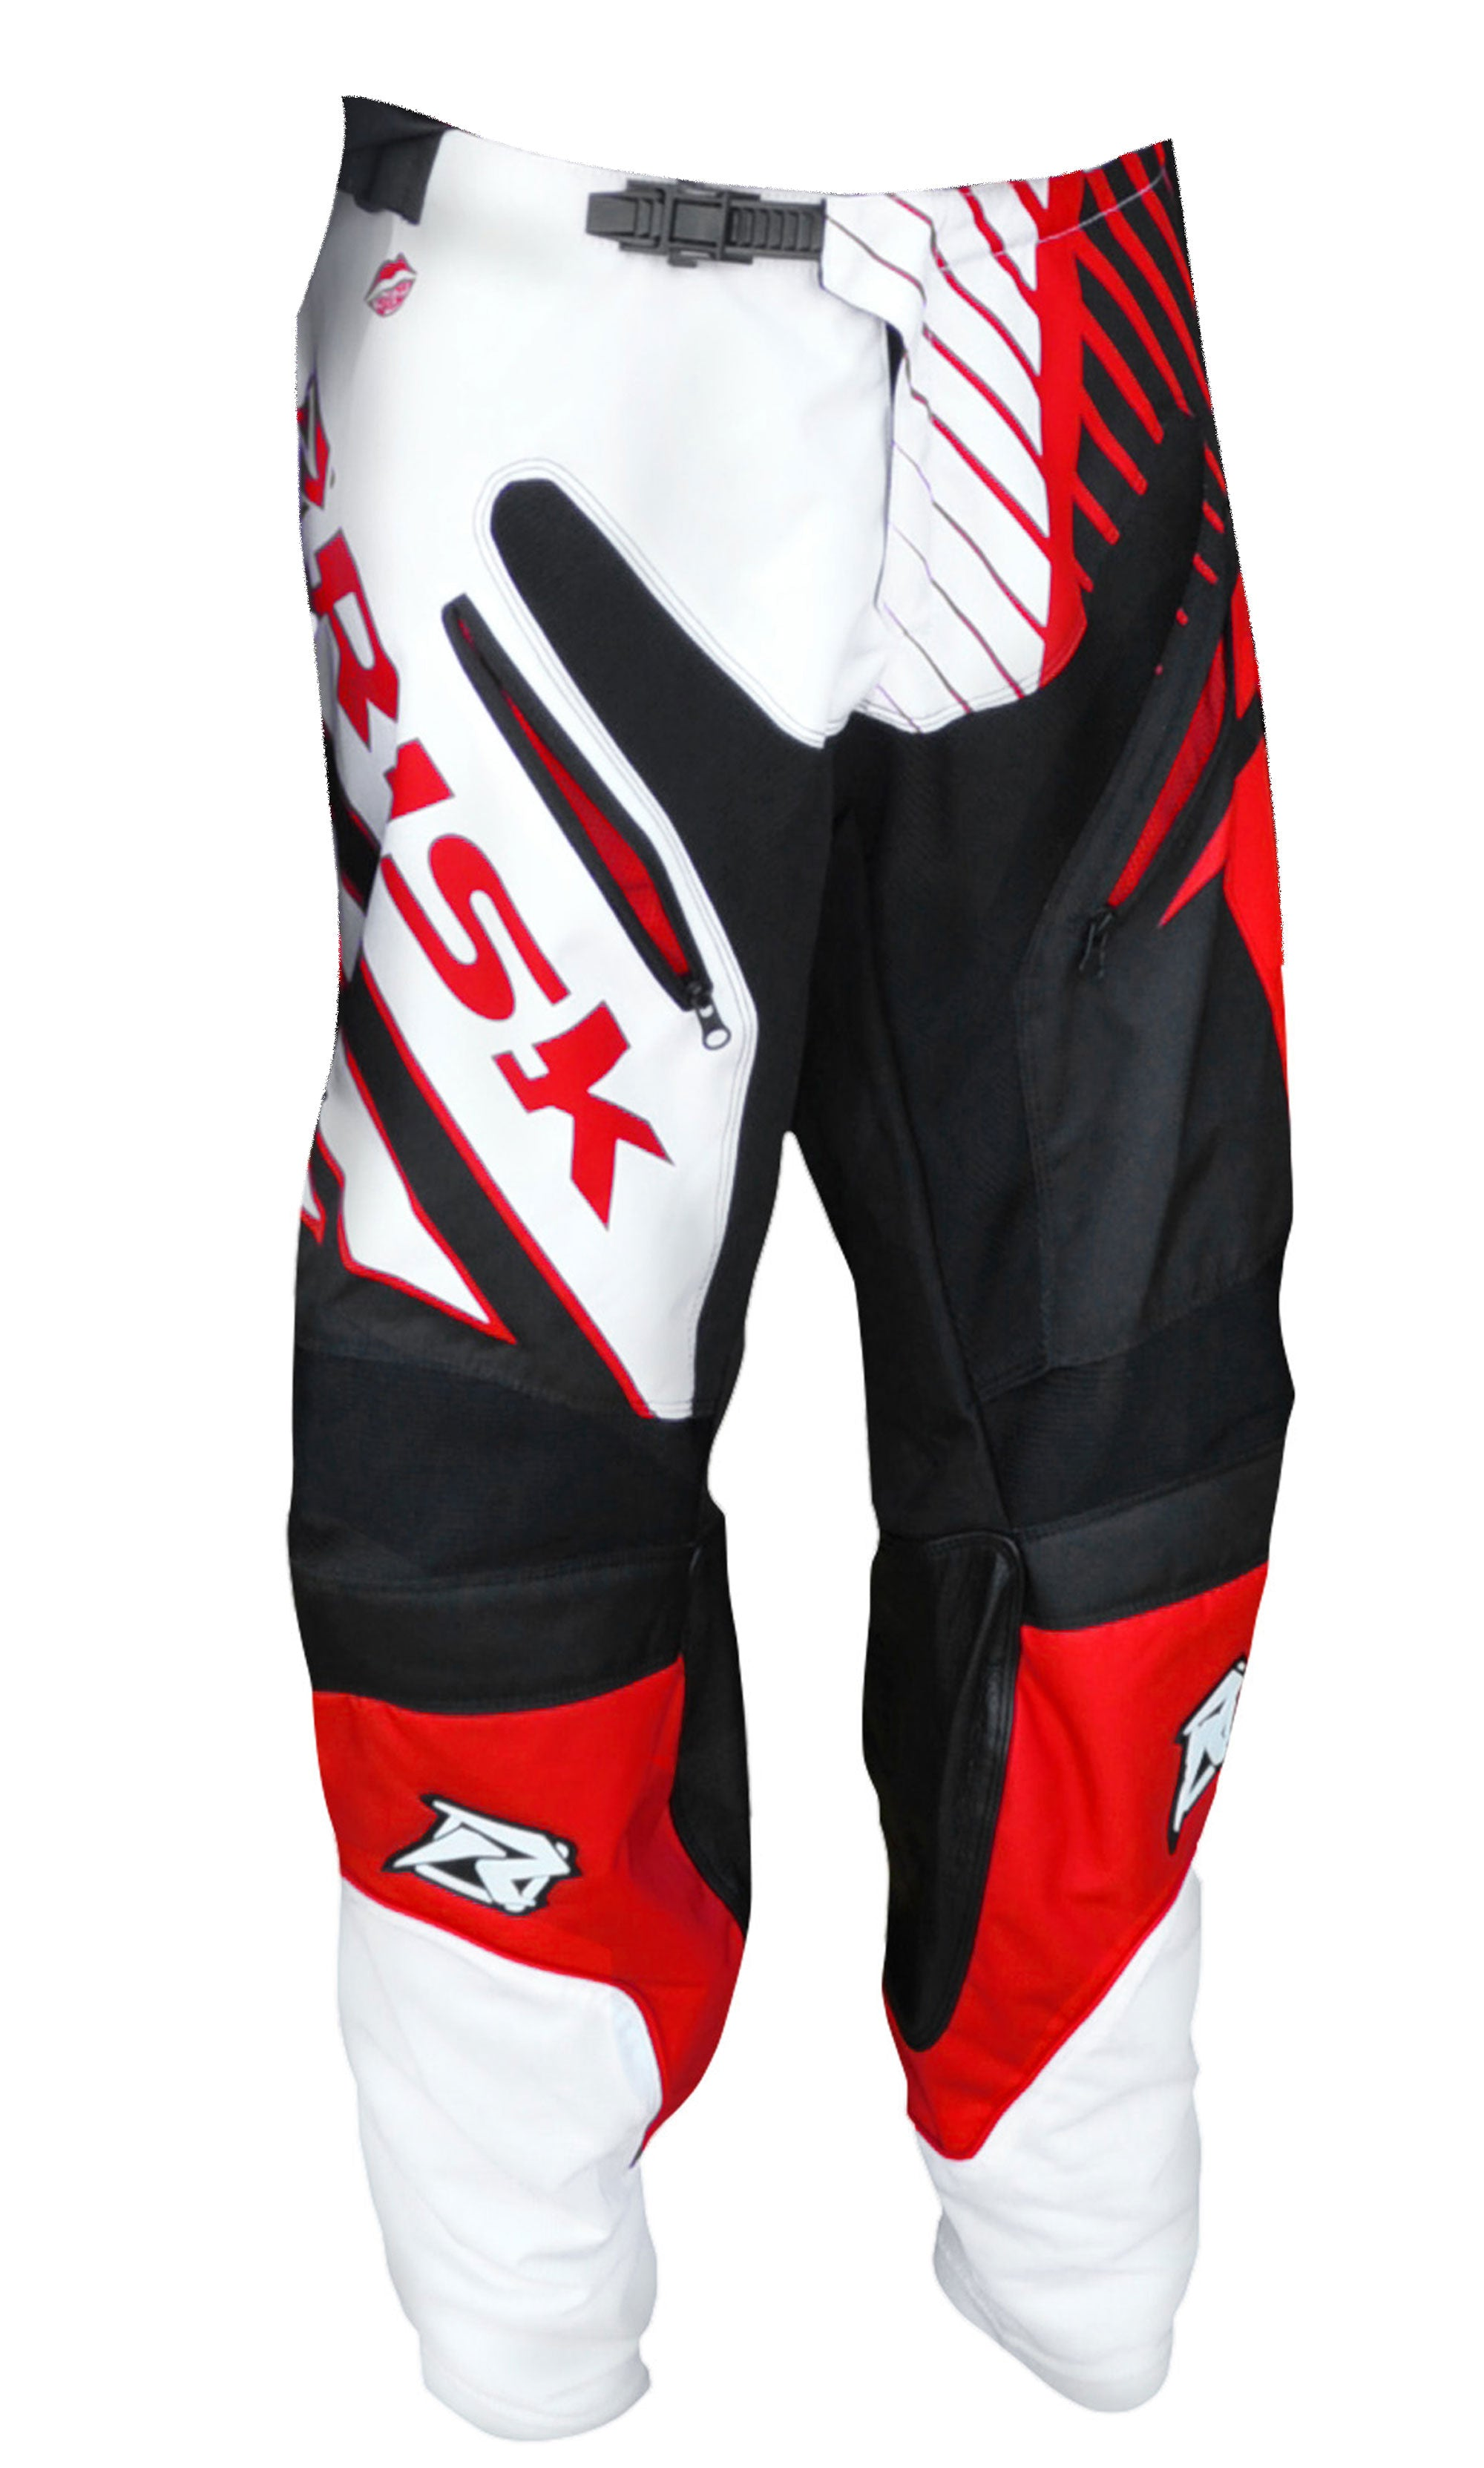 VENTilate Black/Red MX Pants